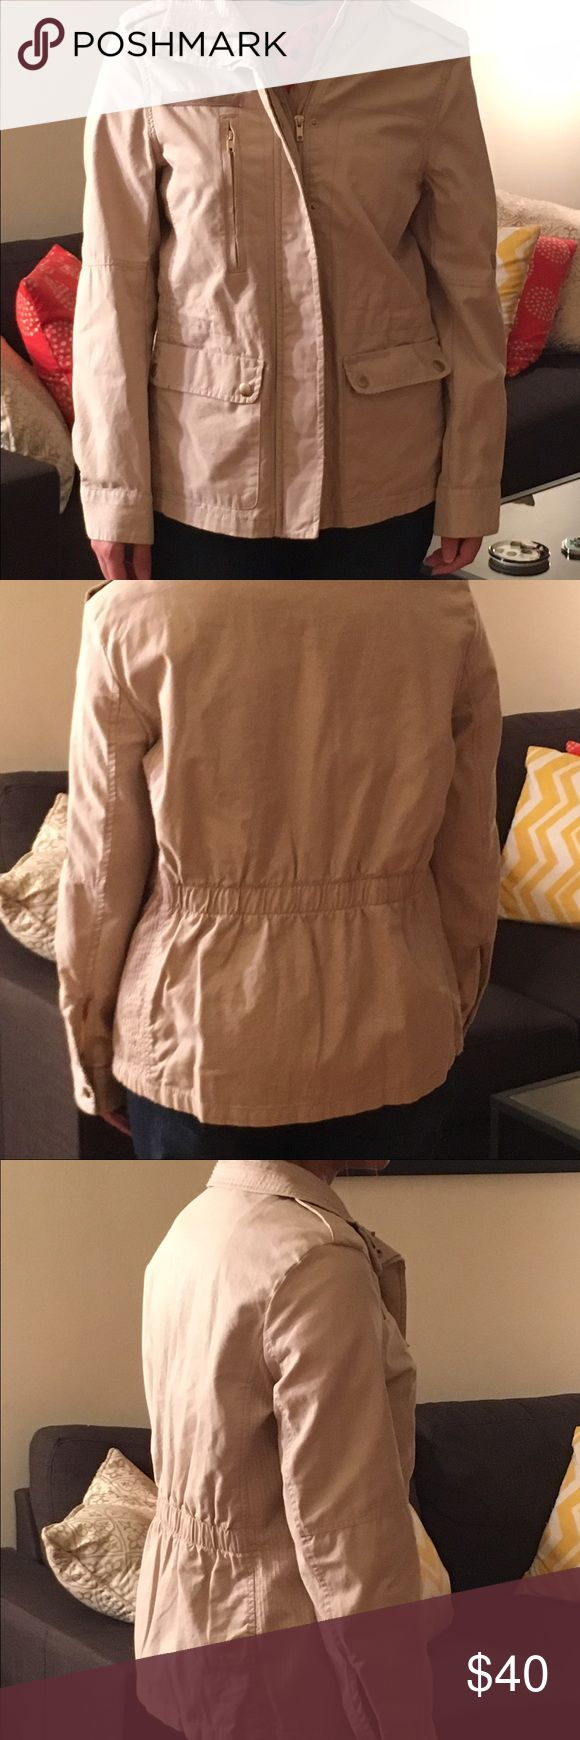 Beige zip up jacket Cream colored, zip up H and M jacket. Jacket has zip up packets as well as button pockets. Classic military design with a elastic band for the back for an easy stretch jacket also has a flat with buttons to cover the zipper. This is the H&M size 8. H&M Jackets & Coats